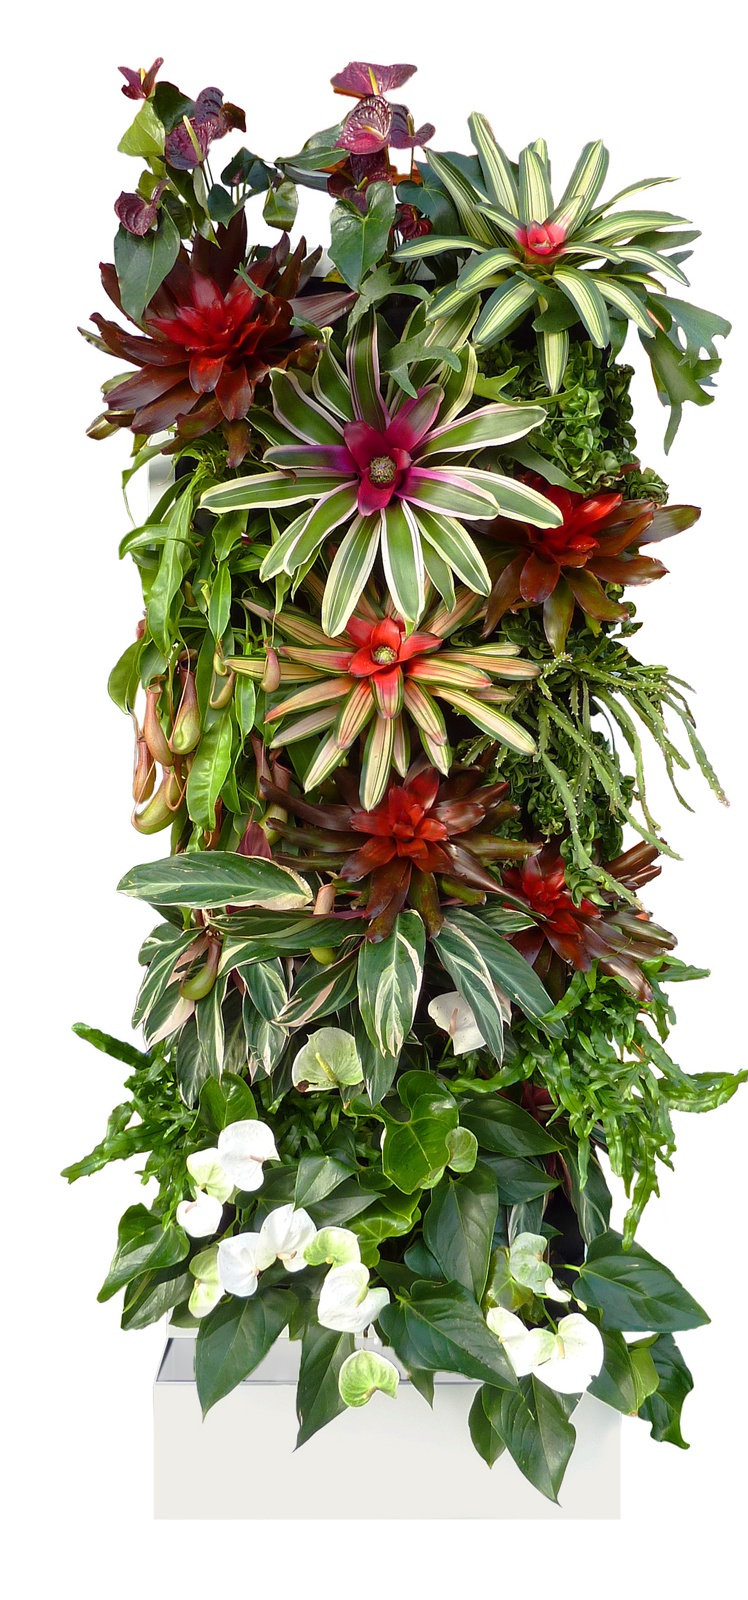 Florafelt Recirc-33 Wall Vertical Garden Unit